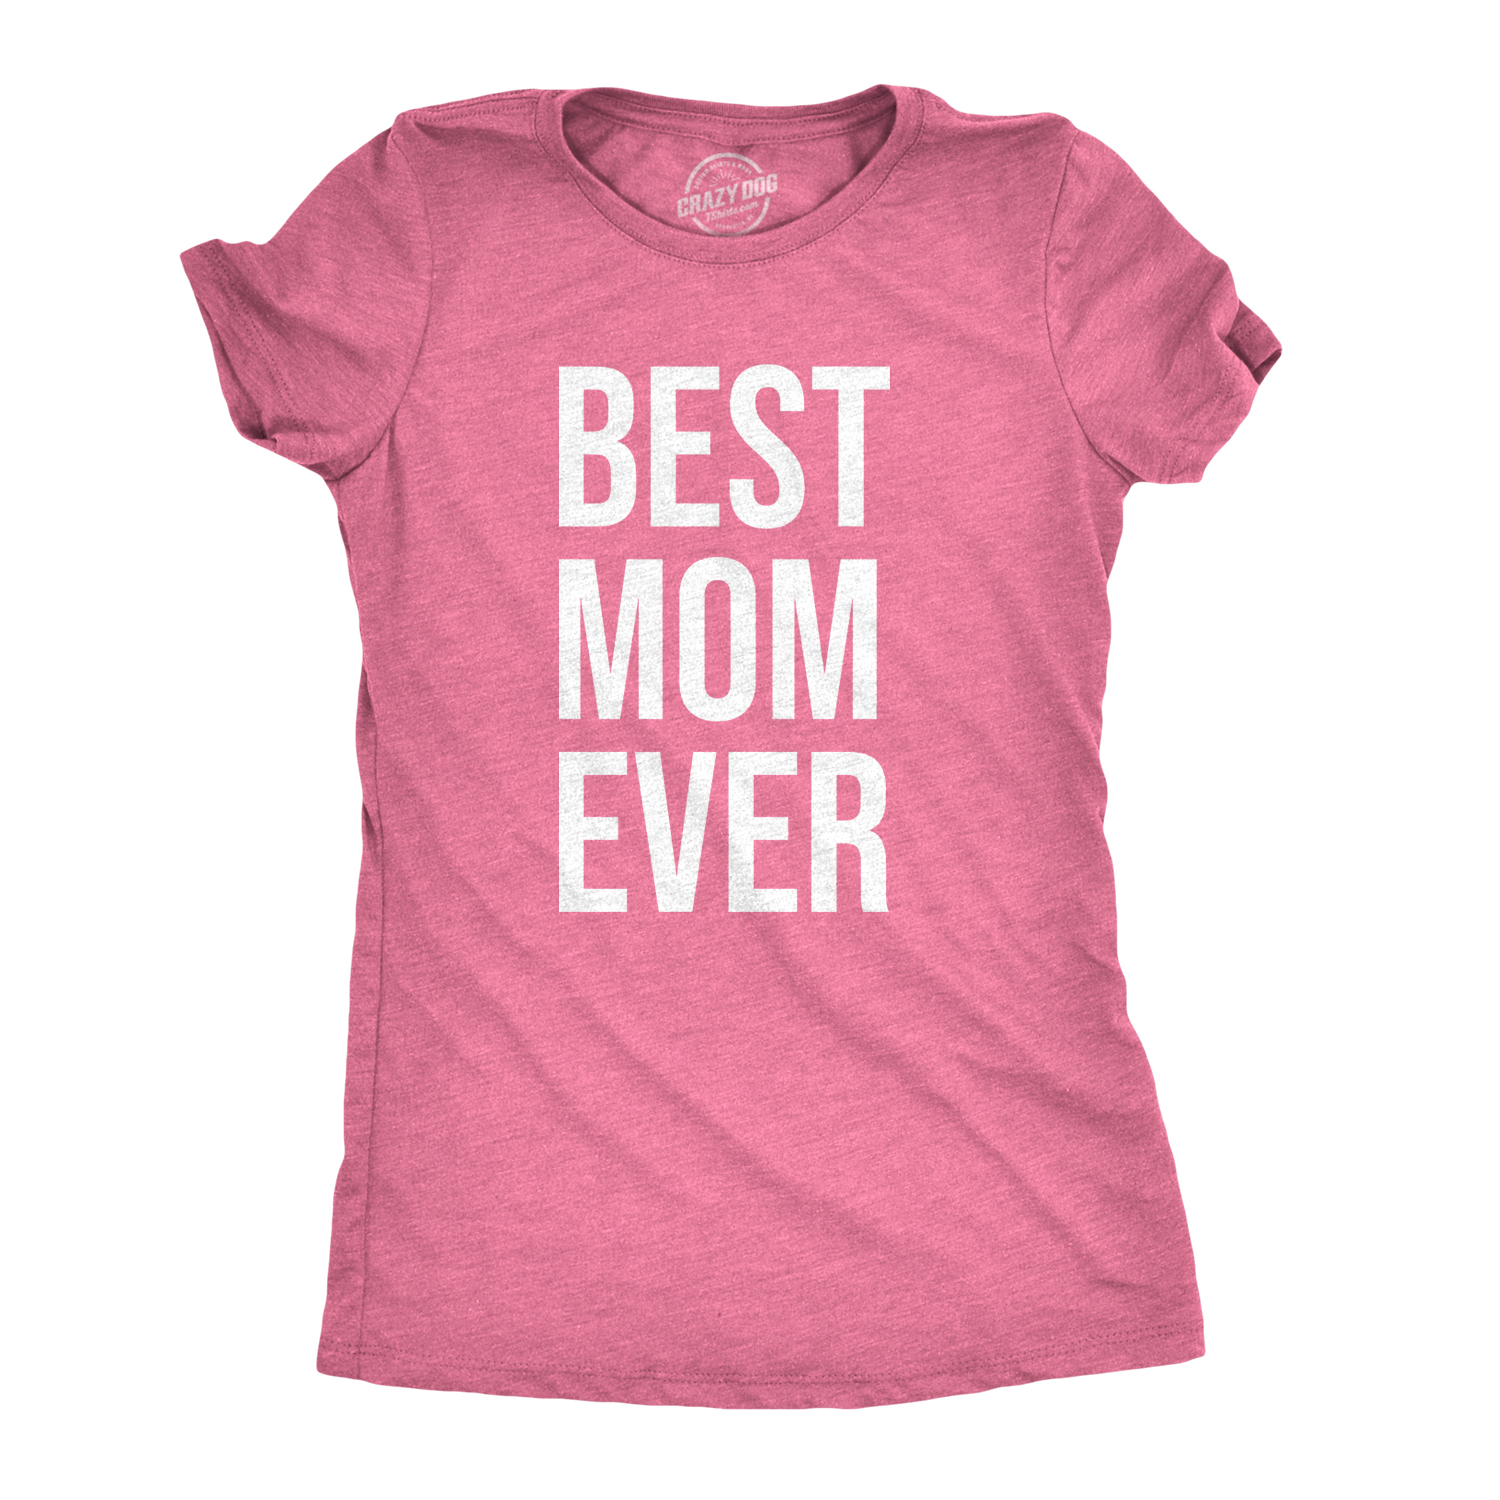 d4c9910013905 Details about Womens Best Mom Ever T shirt Funny Ladies Mother Parent Tees